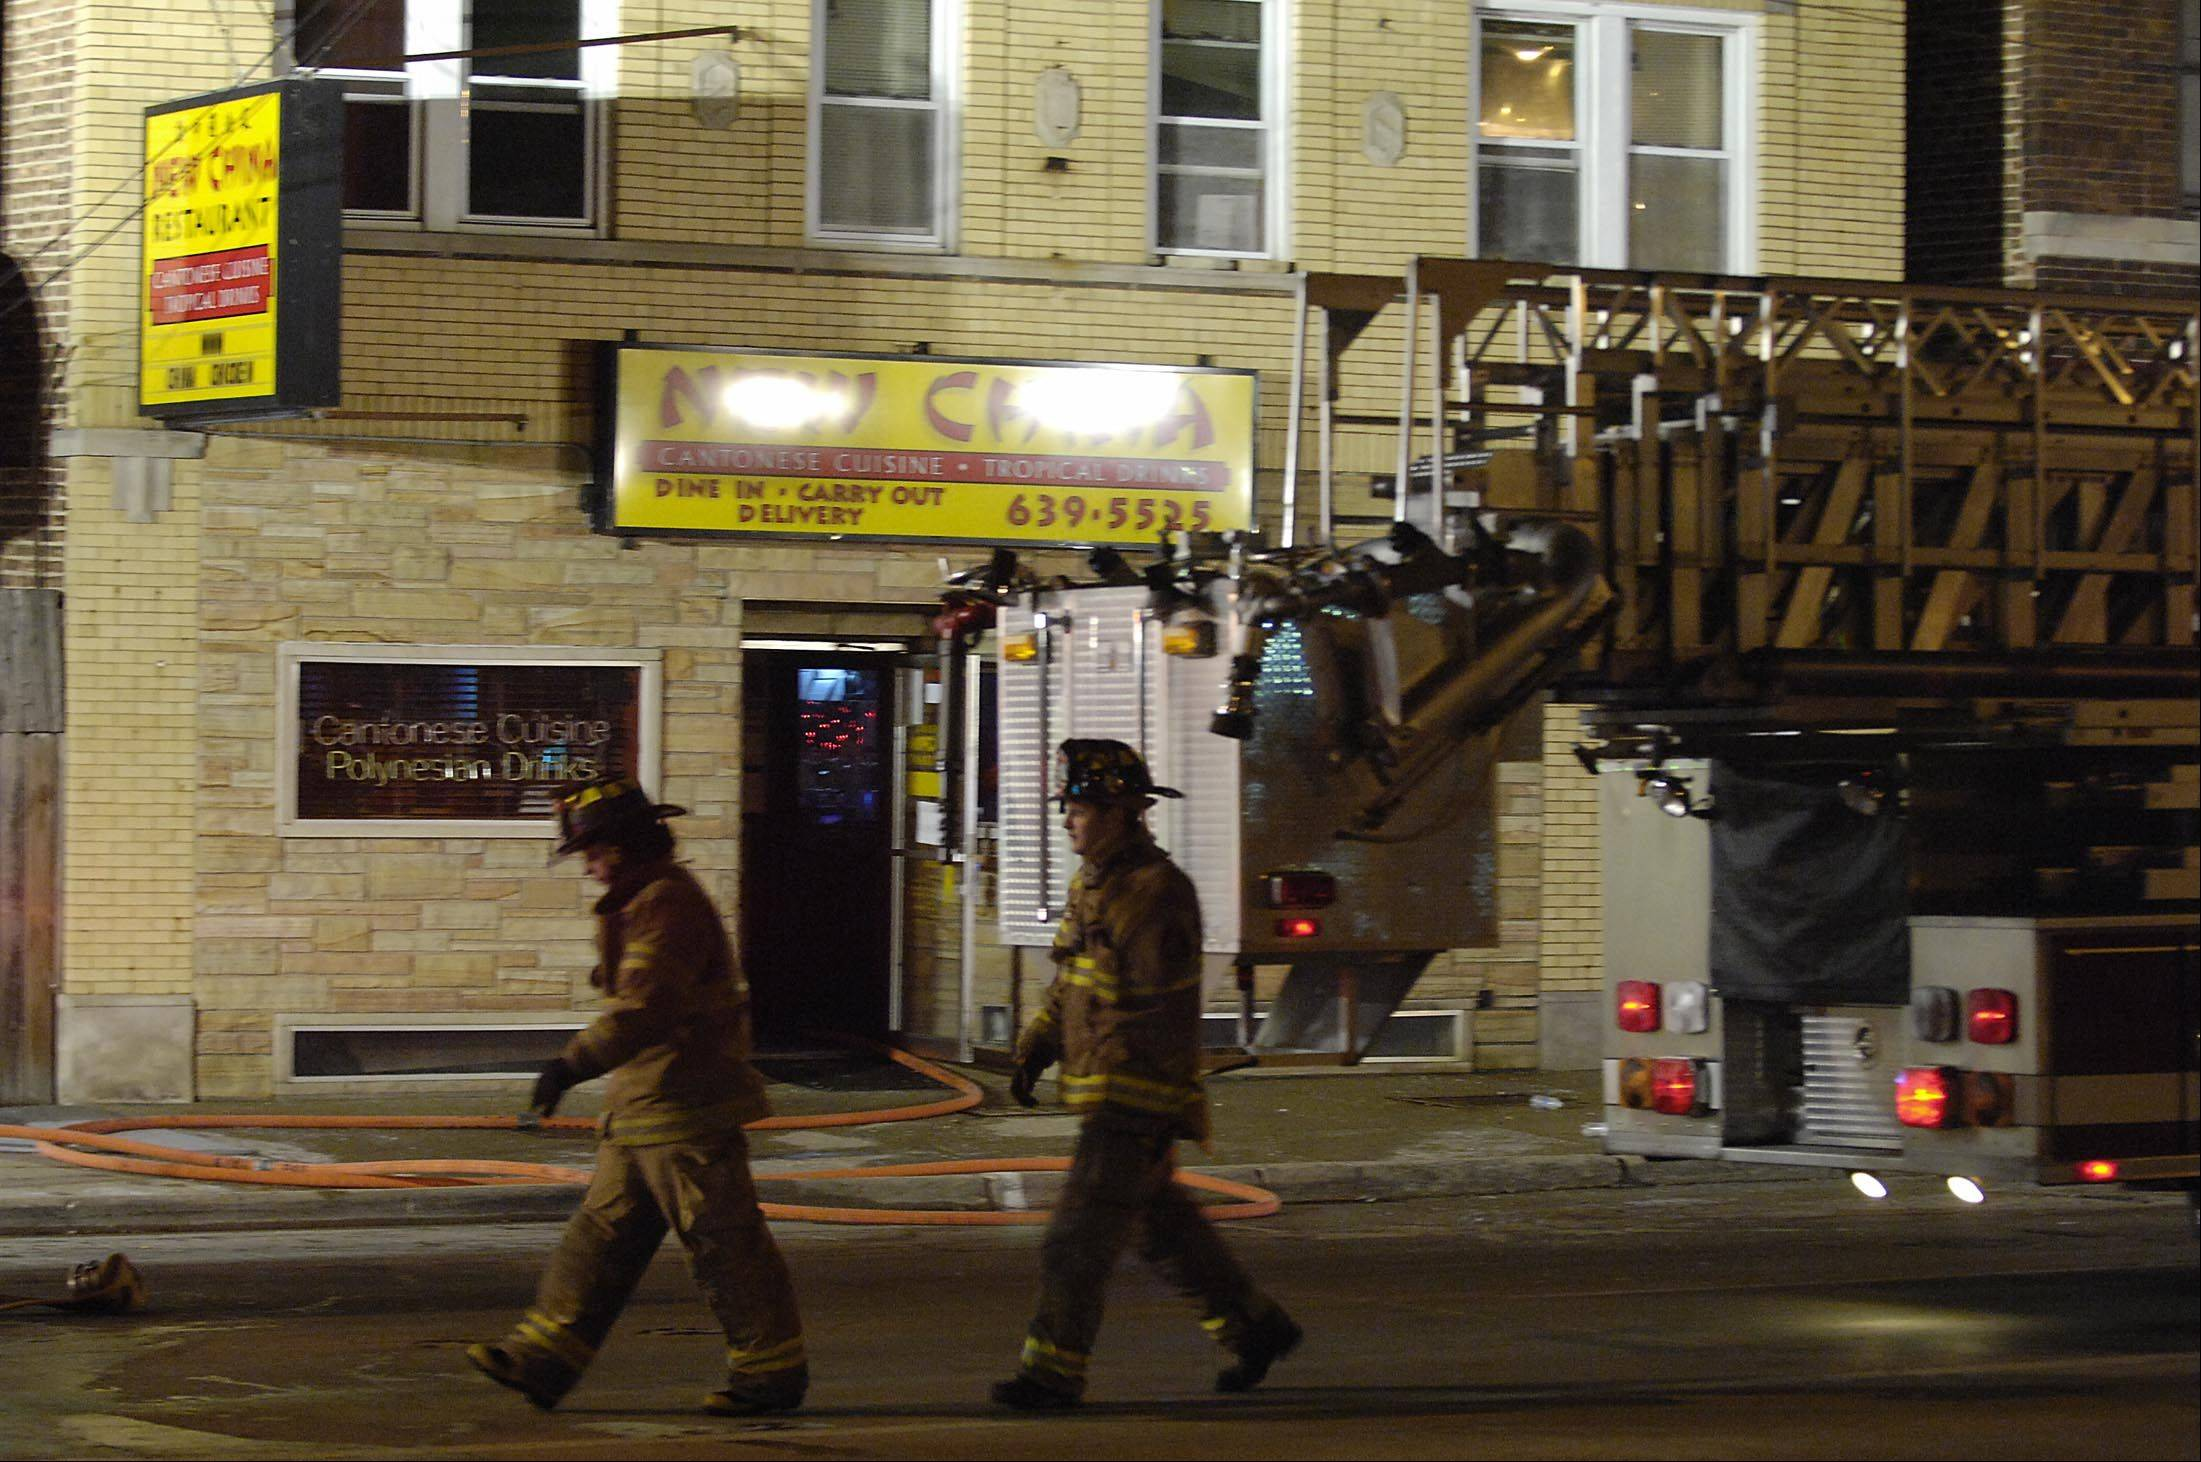 Several fire departments responded to reports of a kitchen fire Thursday evening at the New China restaurant on Route 14 in Fox River Grove.